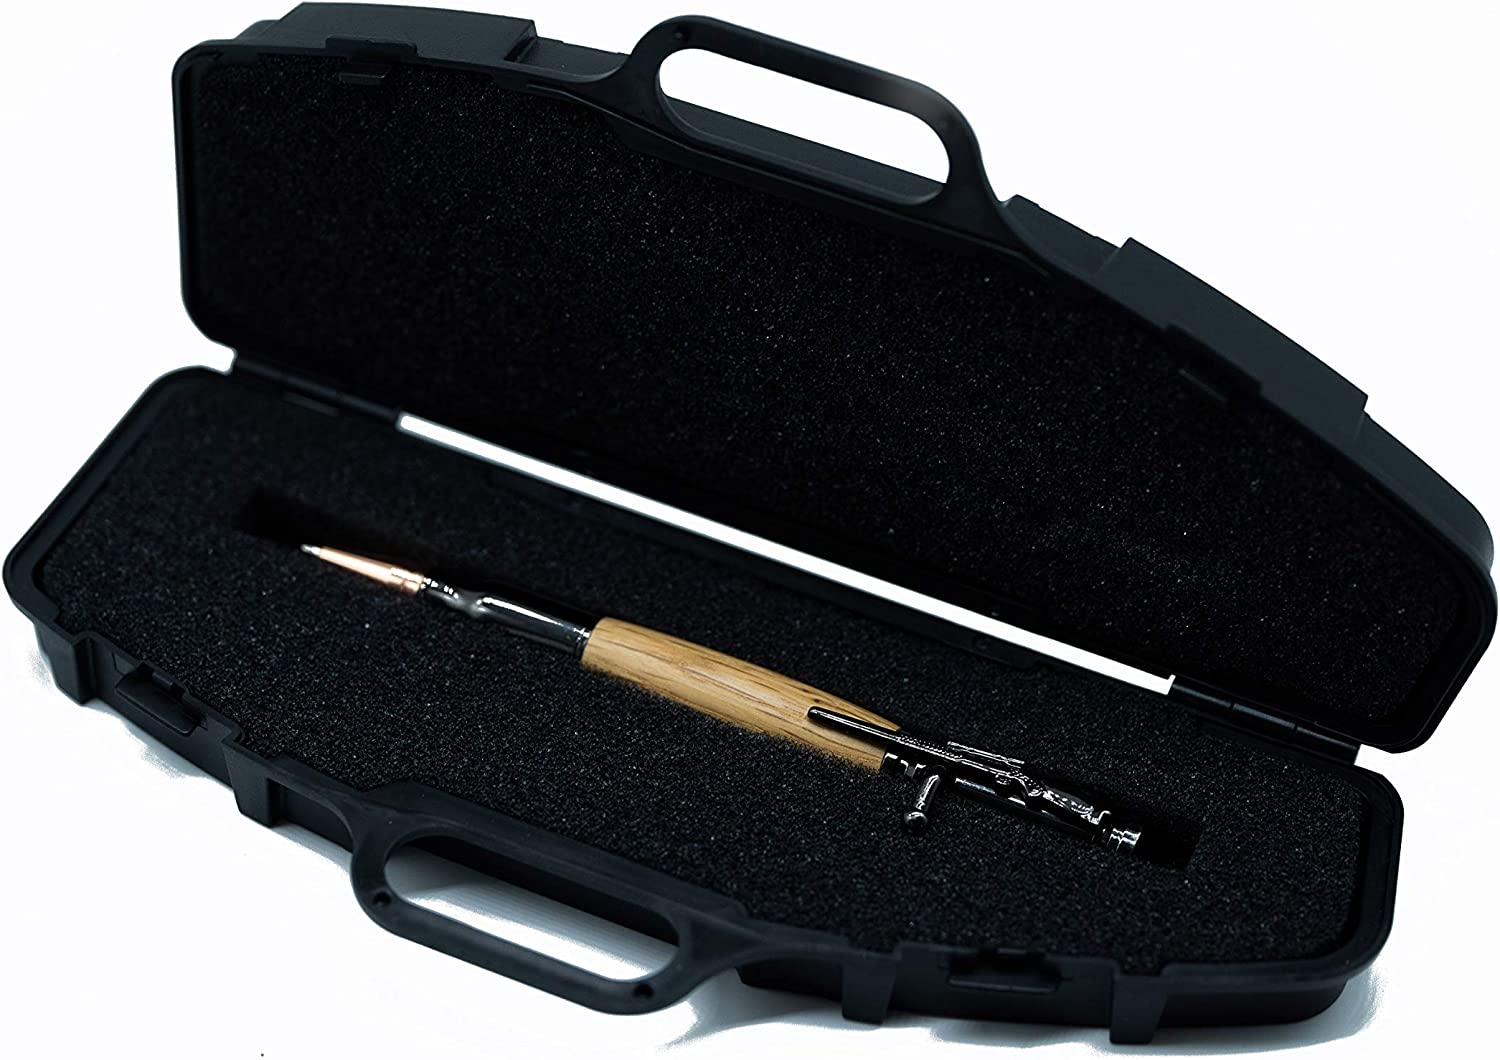 Bolt Action Pen with Case Hand Carved from Mango Wood